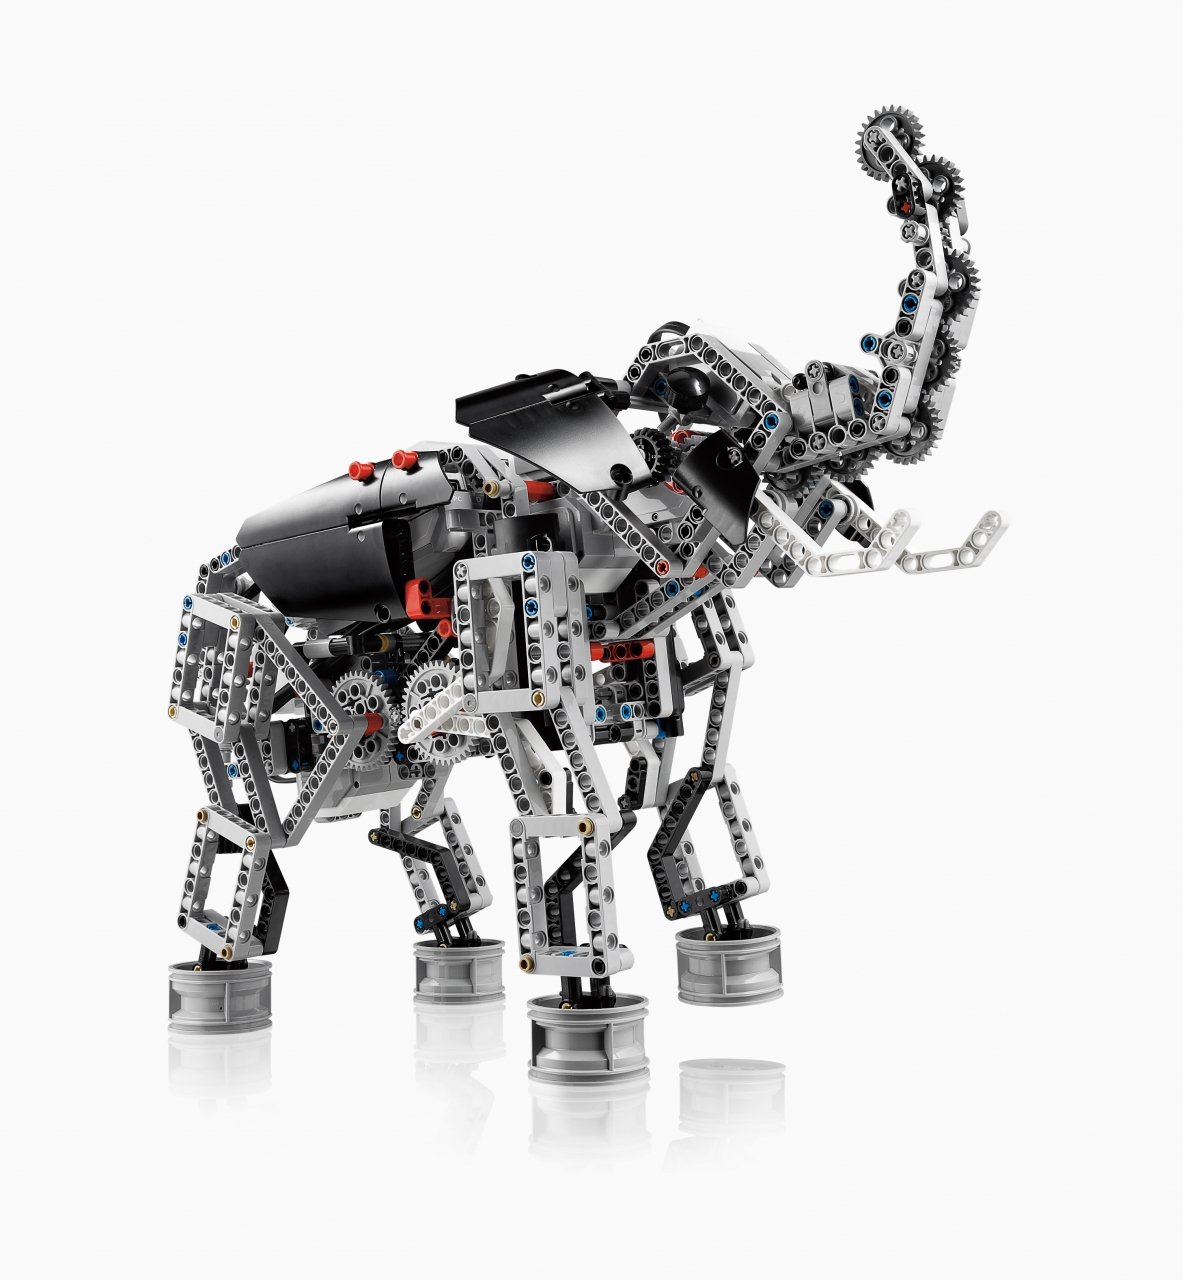 sihirli-elma-swift-playgorunds-1-5-lego-mindstorms.jpg